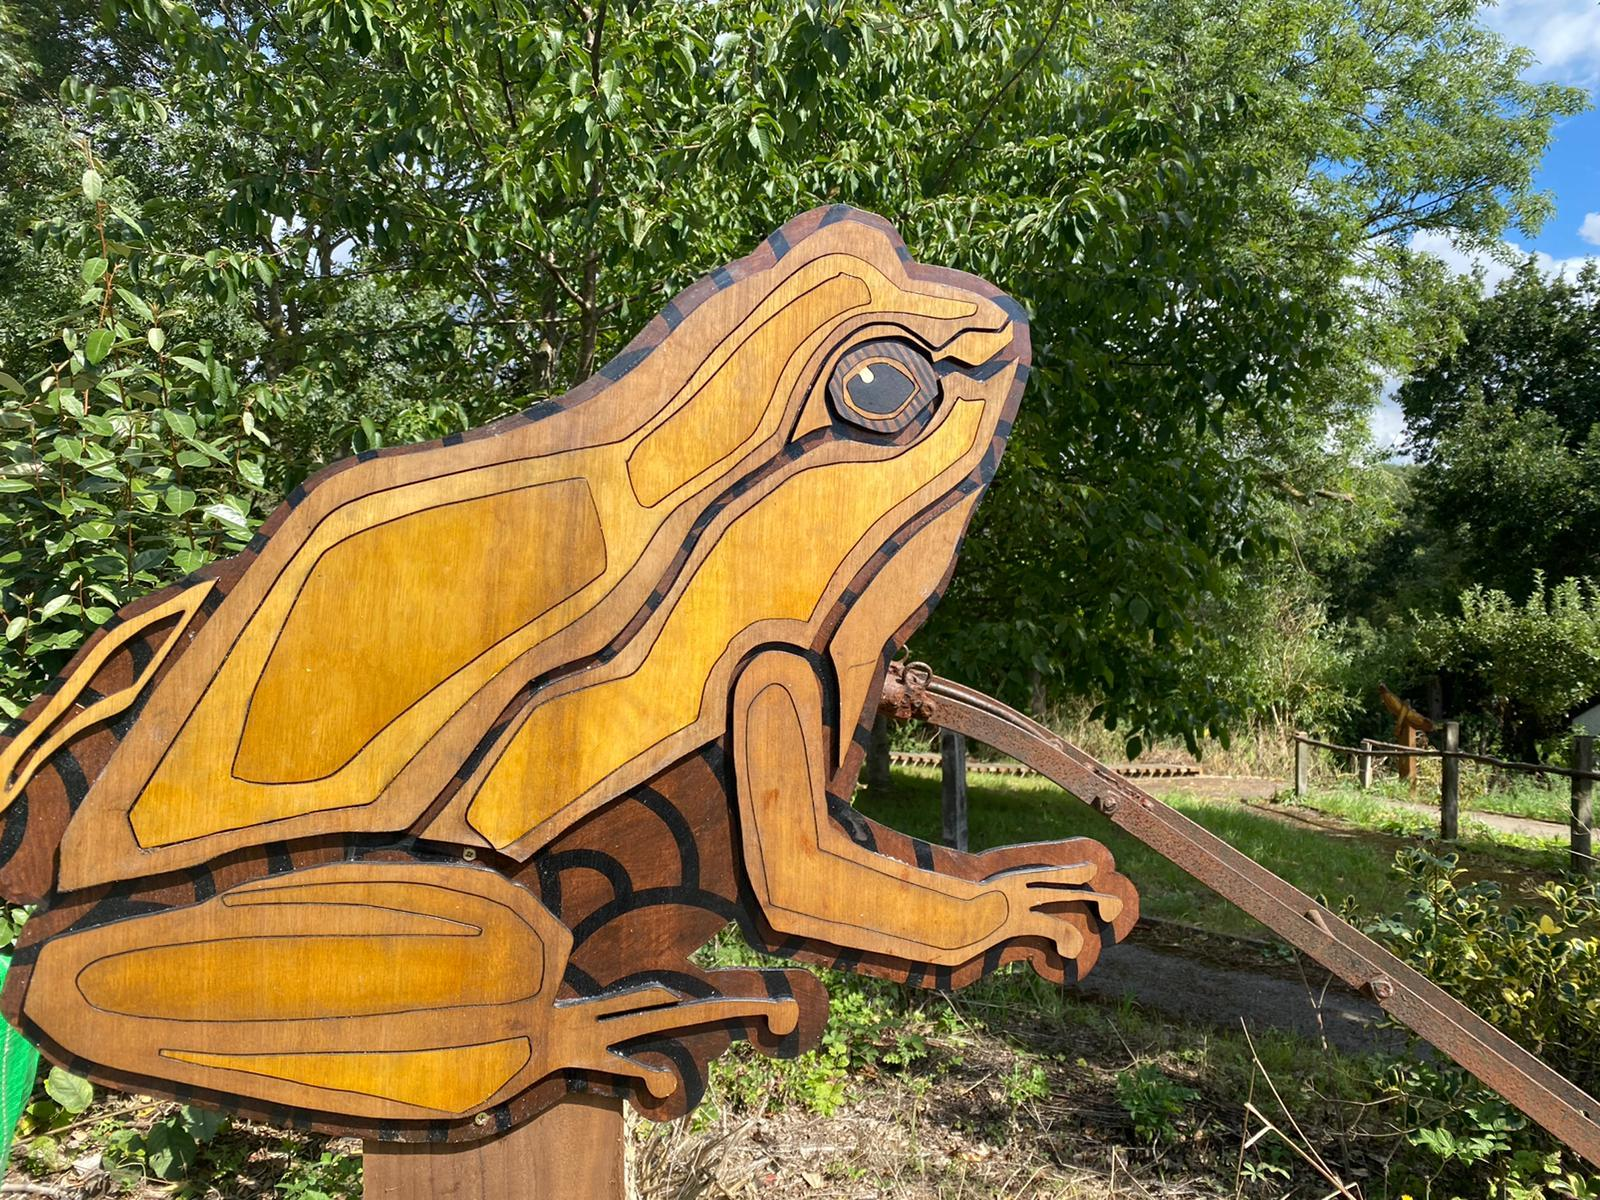 Common frog sculpture